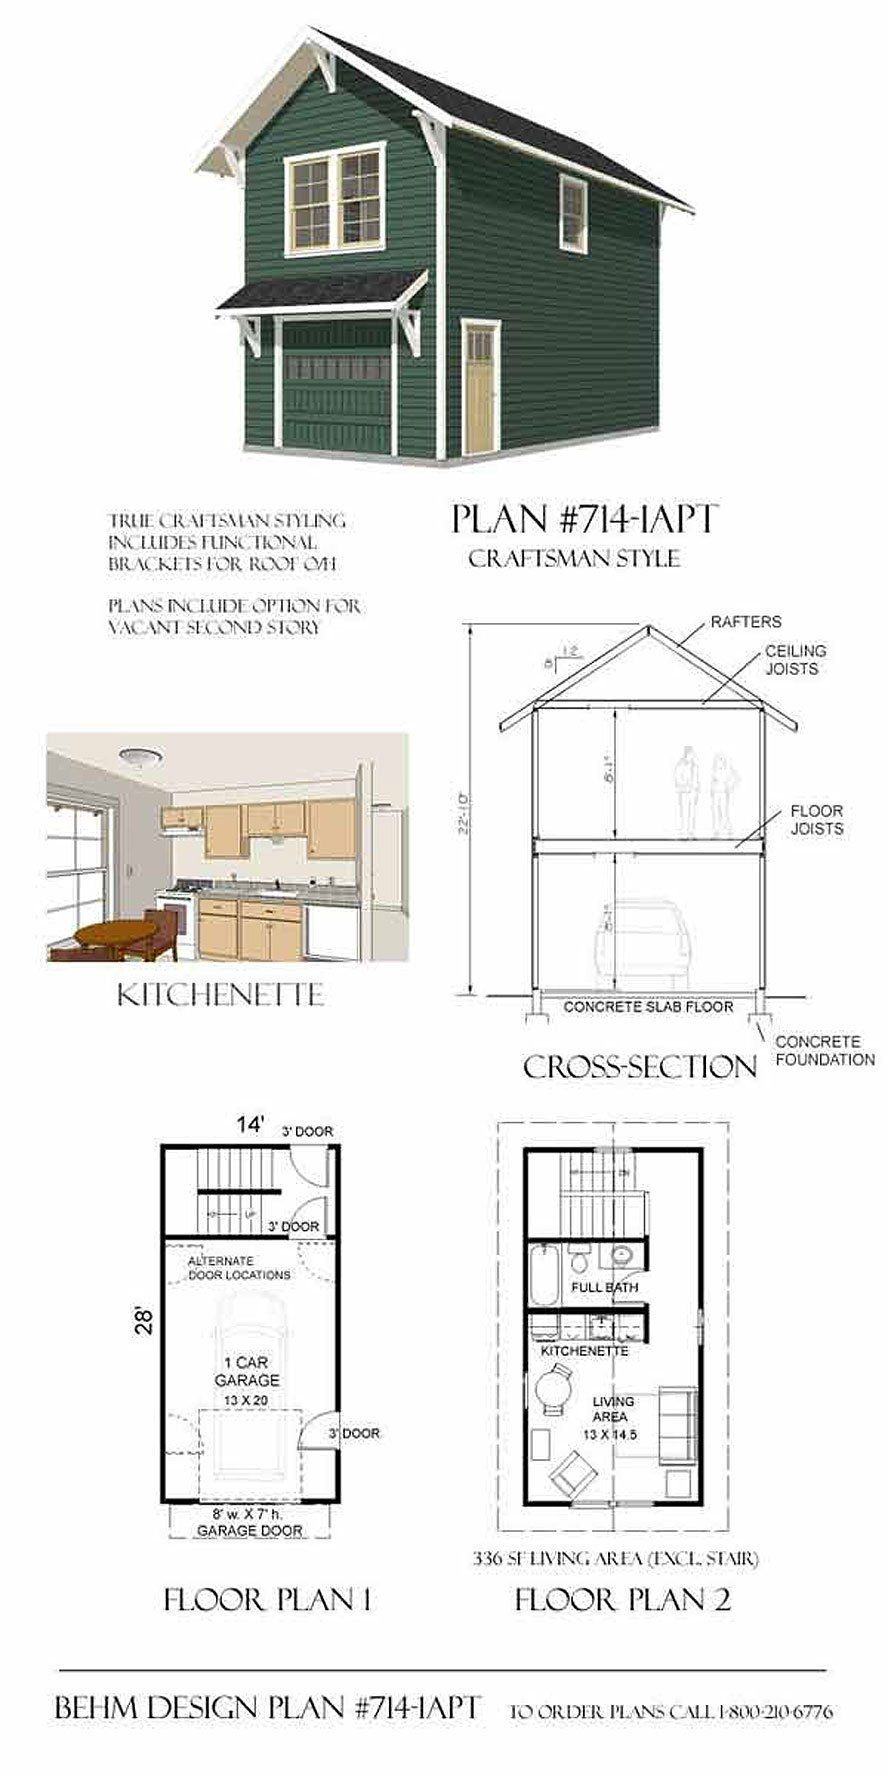 one story garage apartment floor plans garage plans craftsman style one car two story garage with apartment plan 714 1apt 4 4 4361